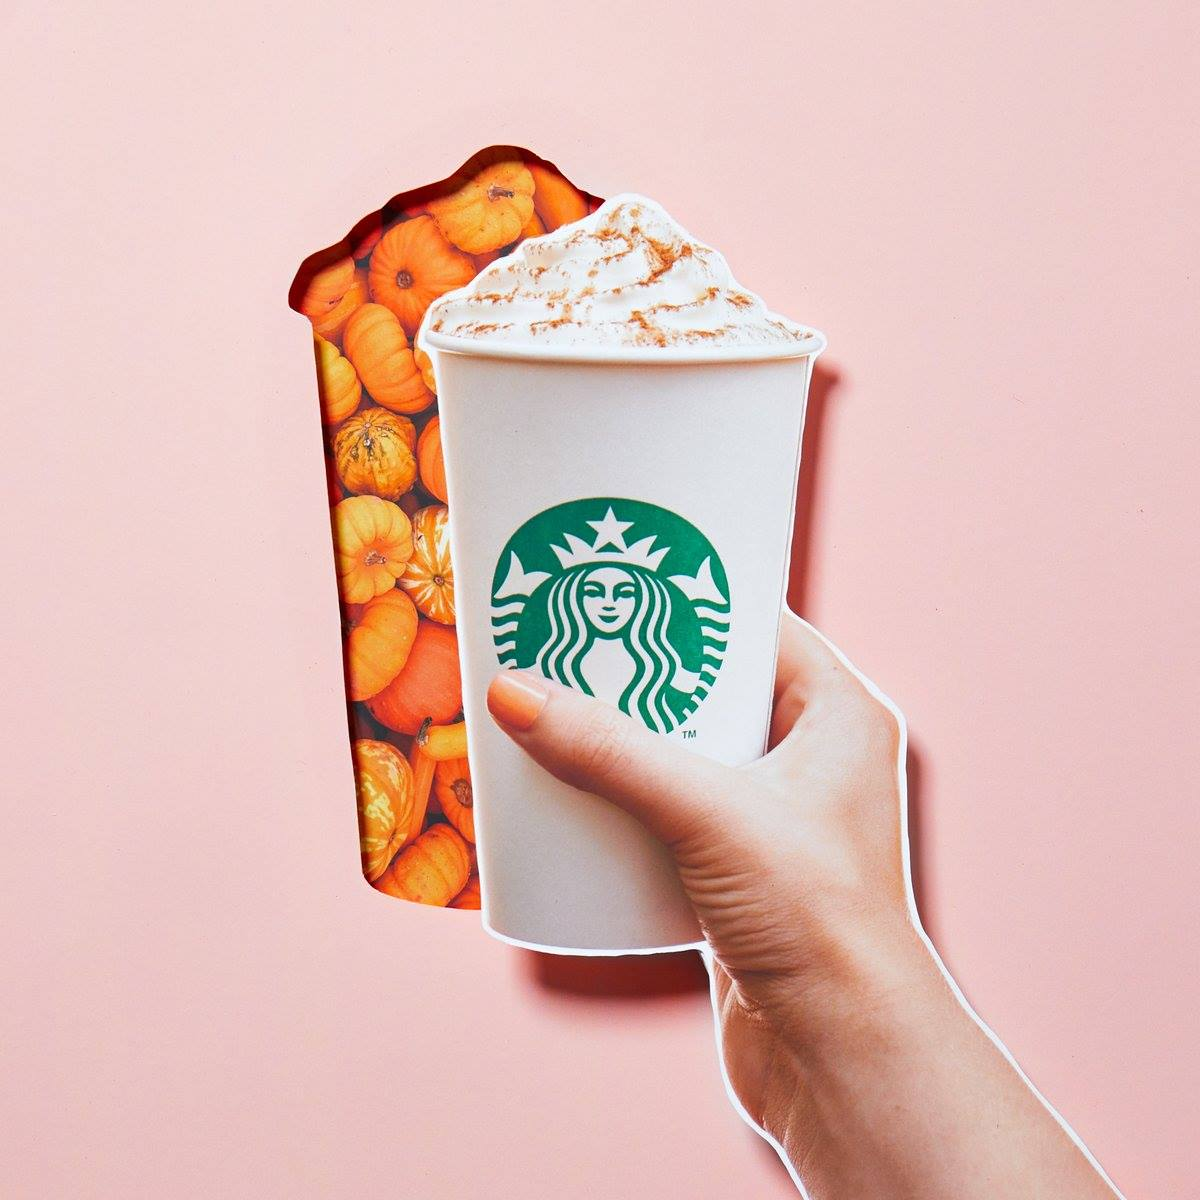 Starbucks' Pumpkin Spiced Lattes Are Back, And Now They're